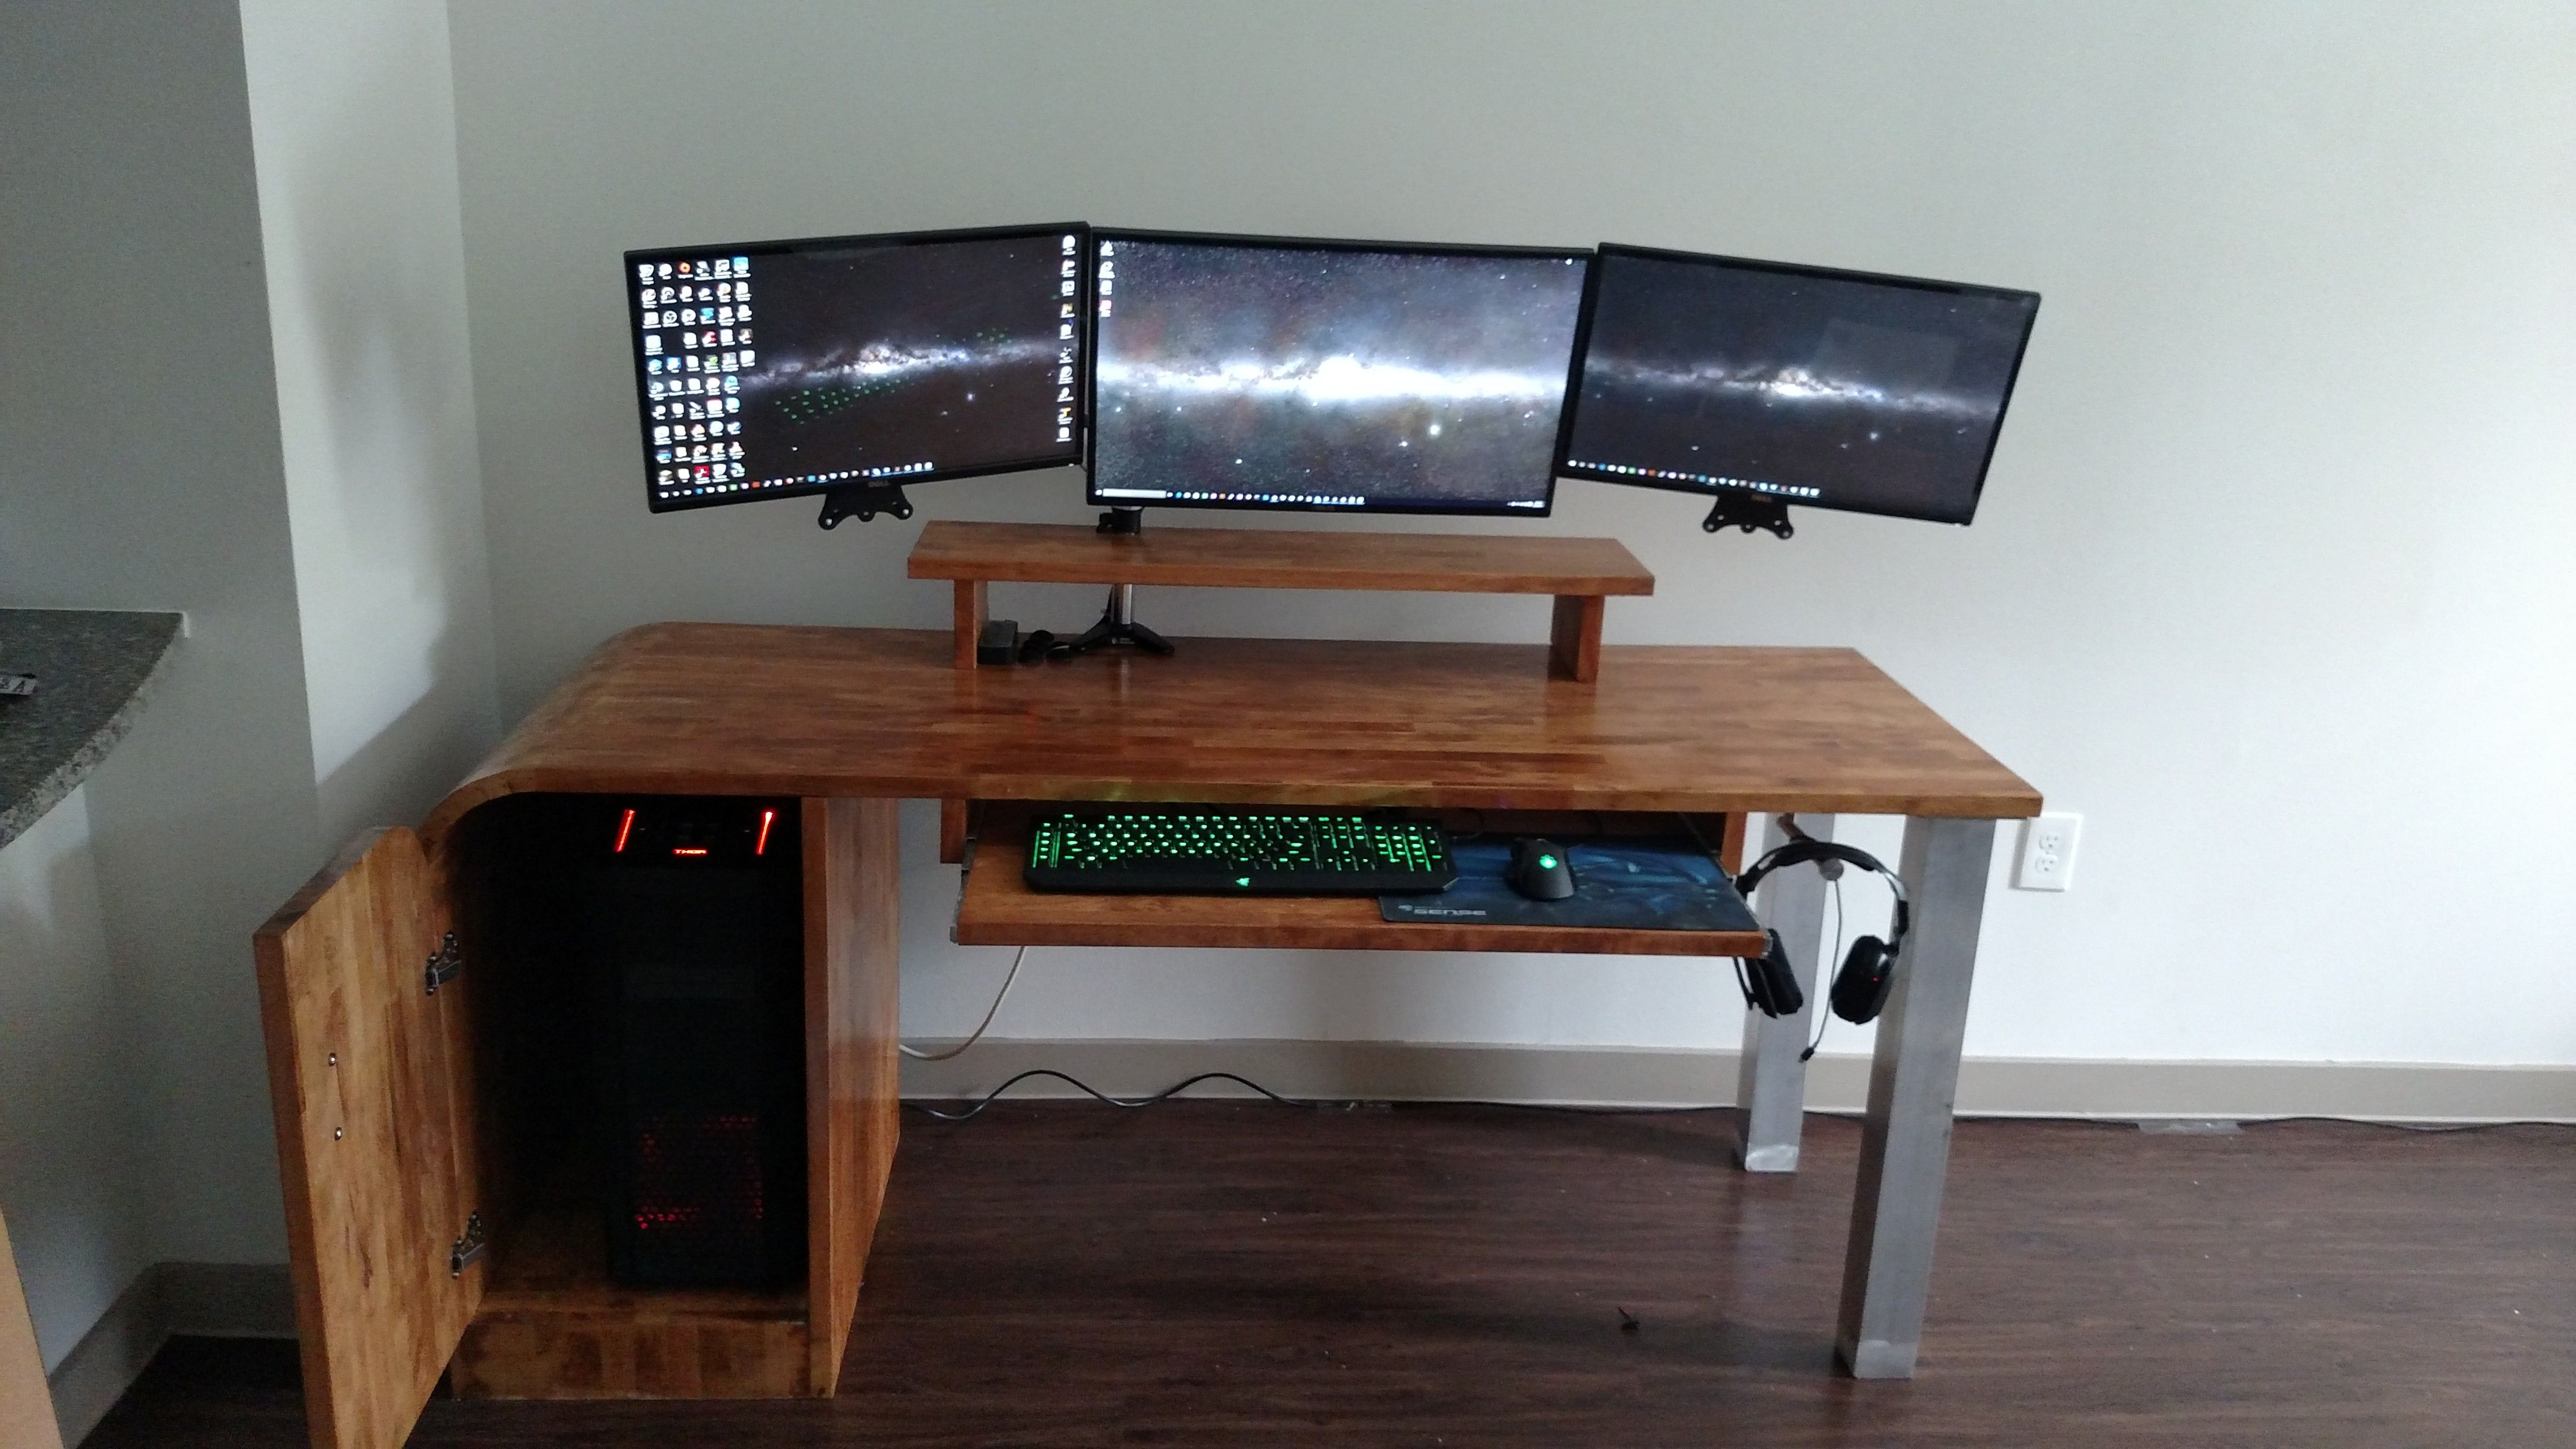 20+ DIY Computer Desk Ideas for Making Your Home Office